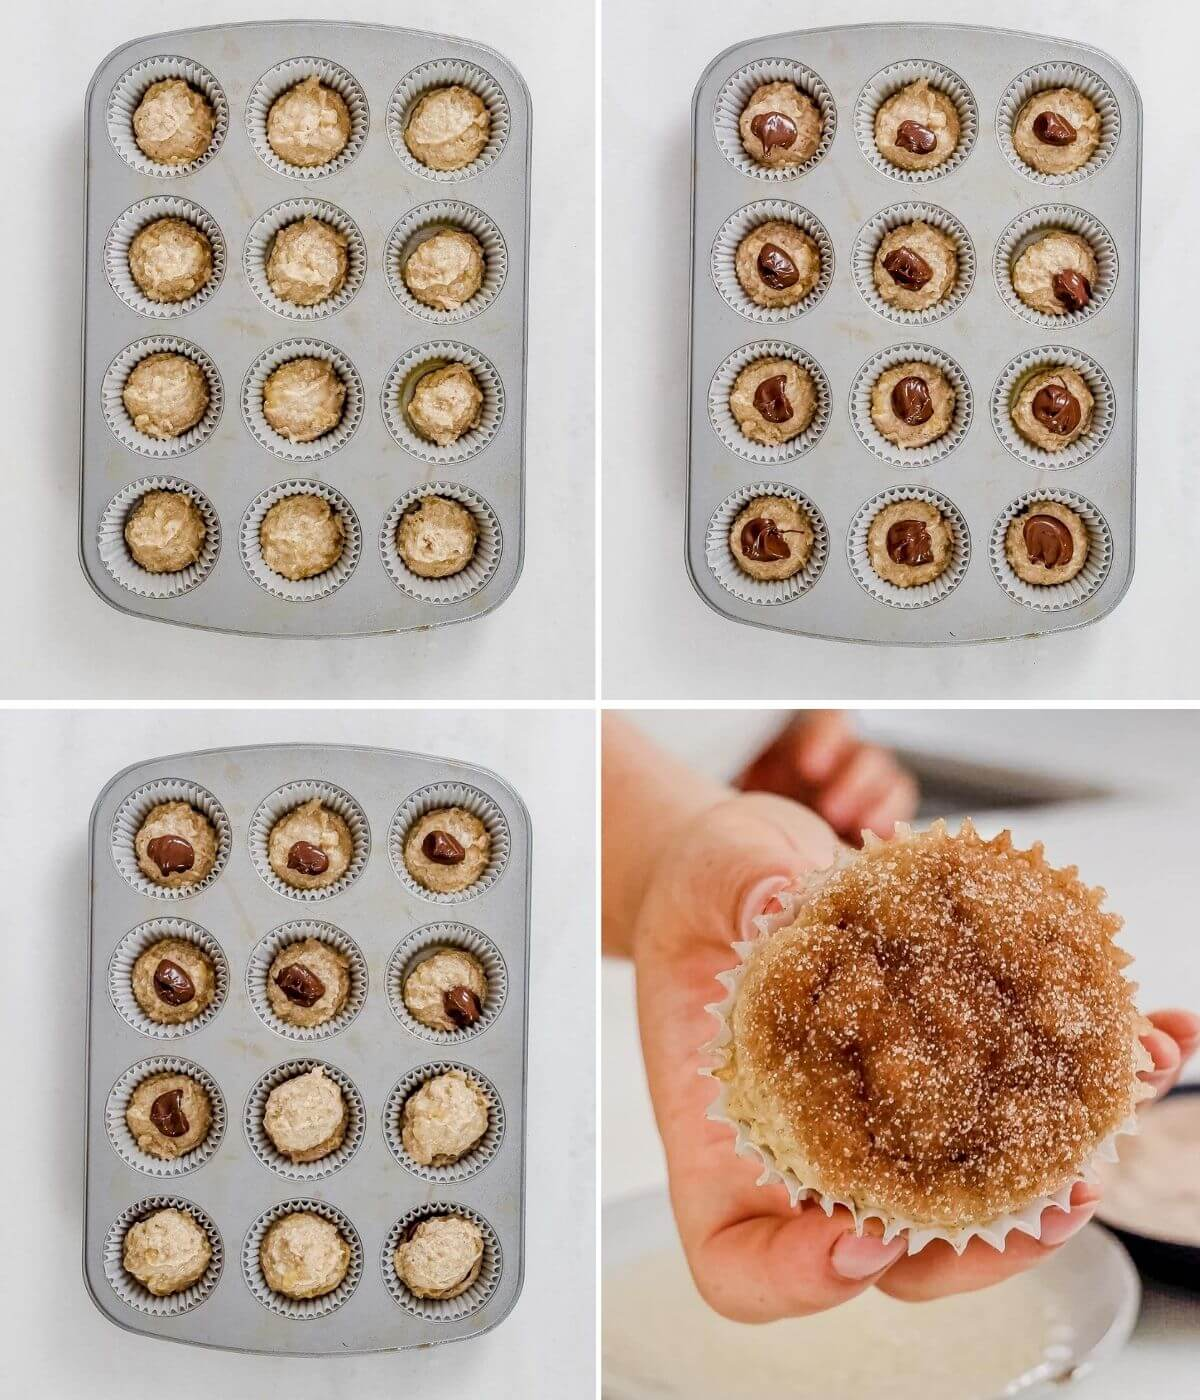 step by step pictures showing how to stuff nutella in banana muffins